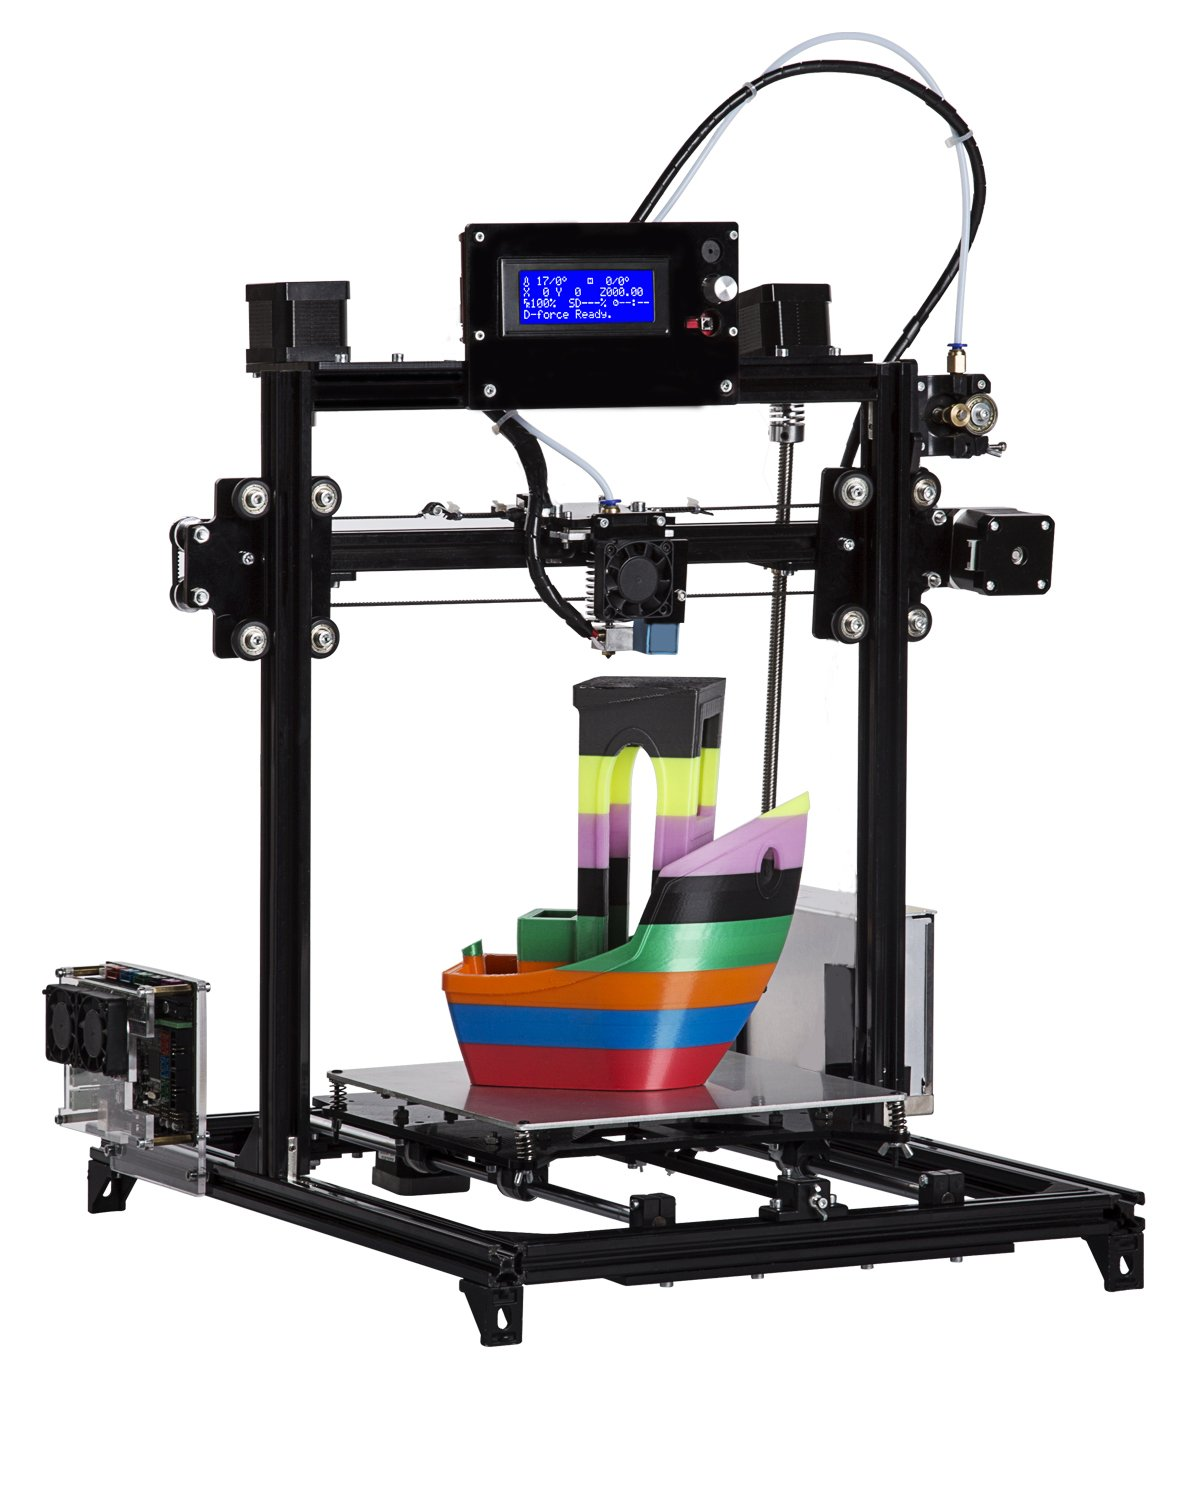 KIT Prusa i3 RepRap·  Autonivelado· 200x200x220mm